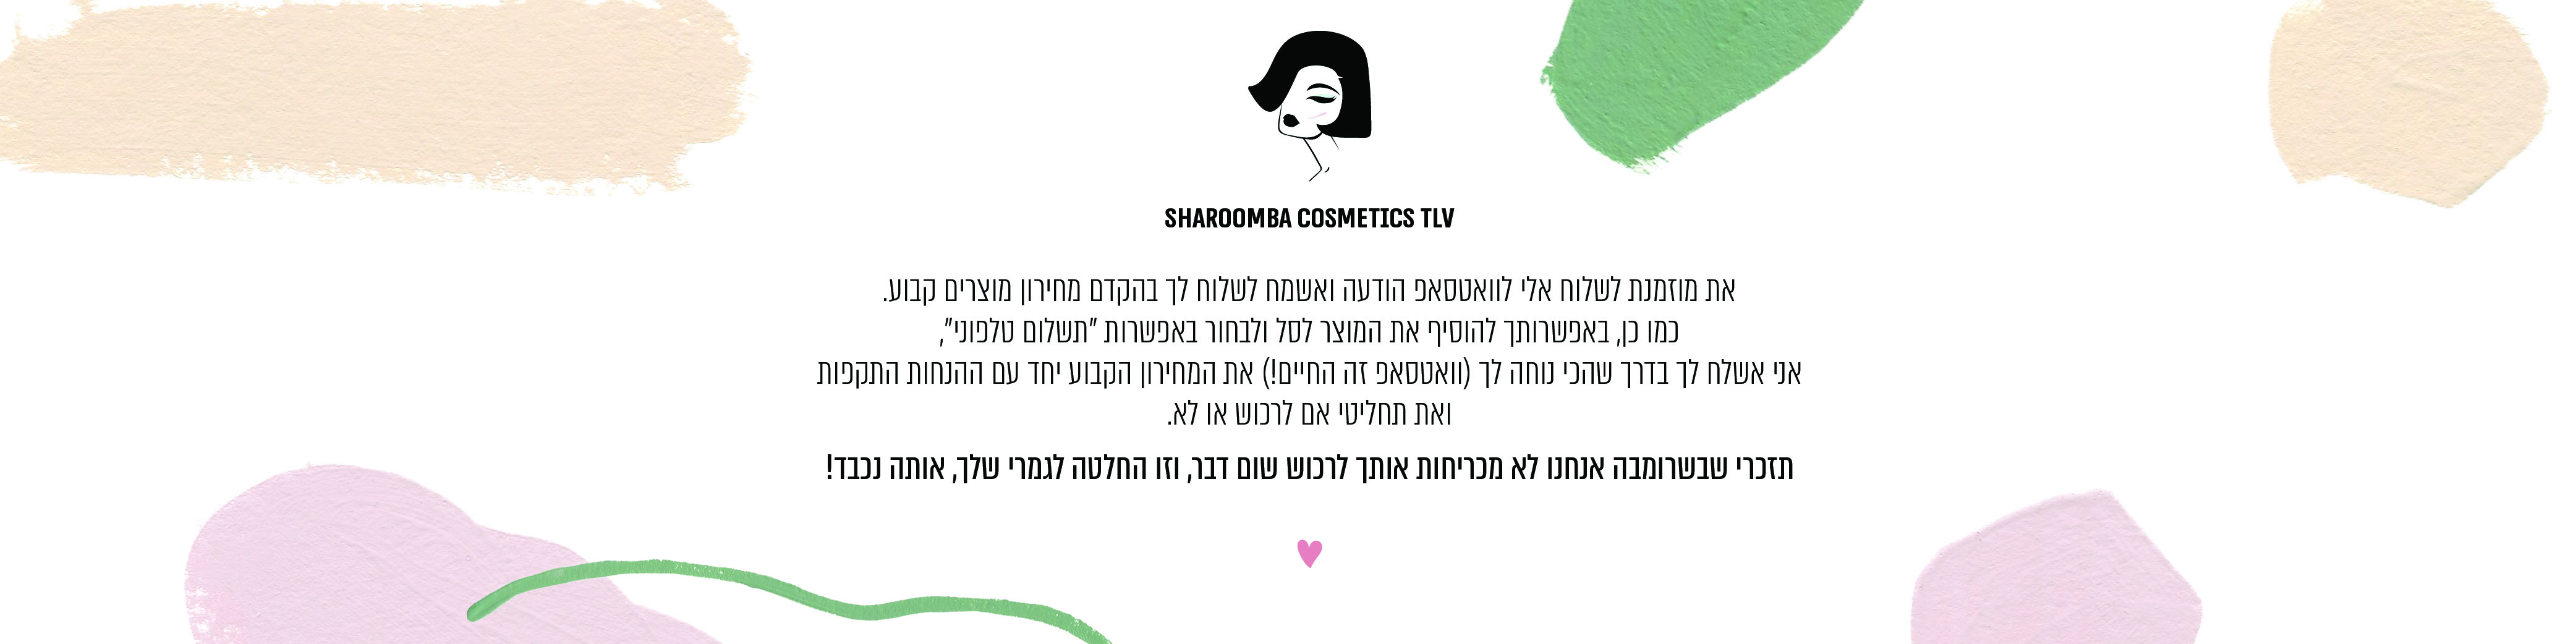 הכל מהכל וכל - Sharoomba shop